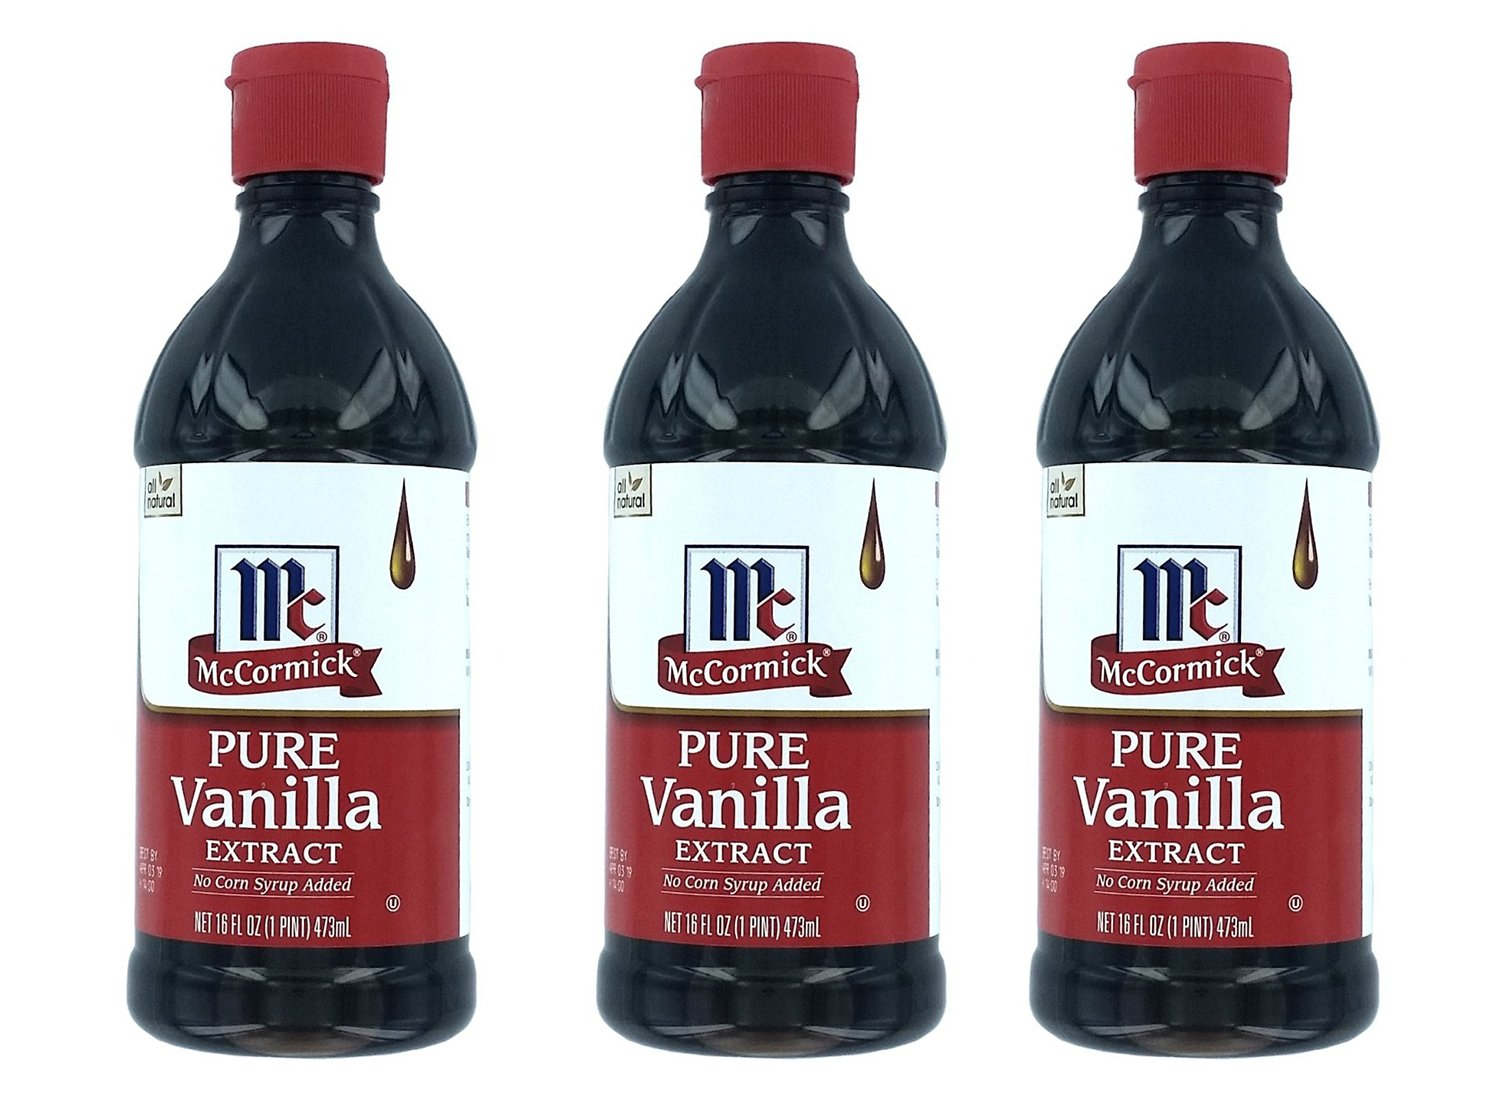 McCormick Pure Vanilla vvLNs Extract, 16 Oz (3 Pack) by McCormick (Image #1)